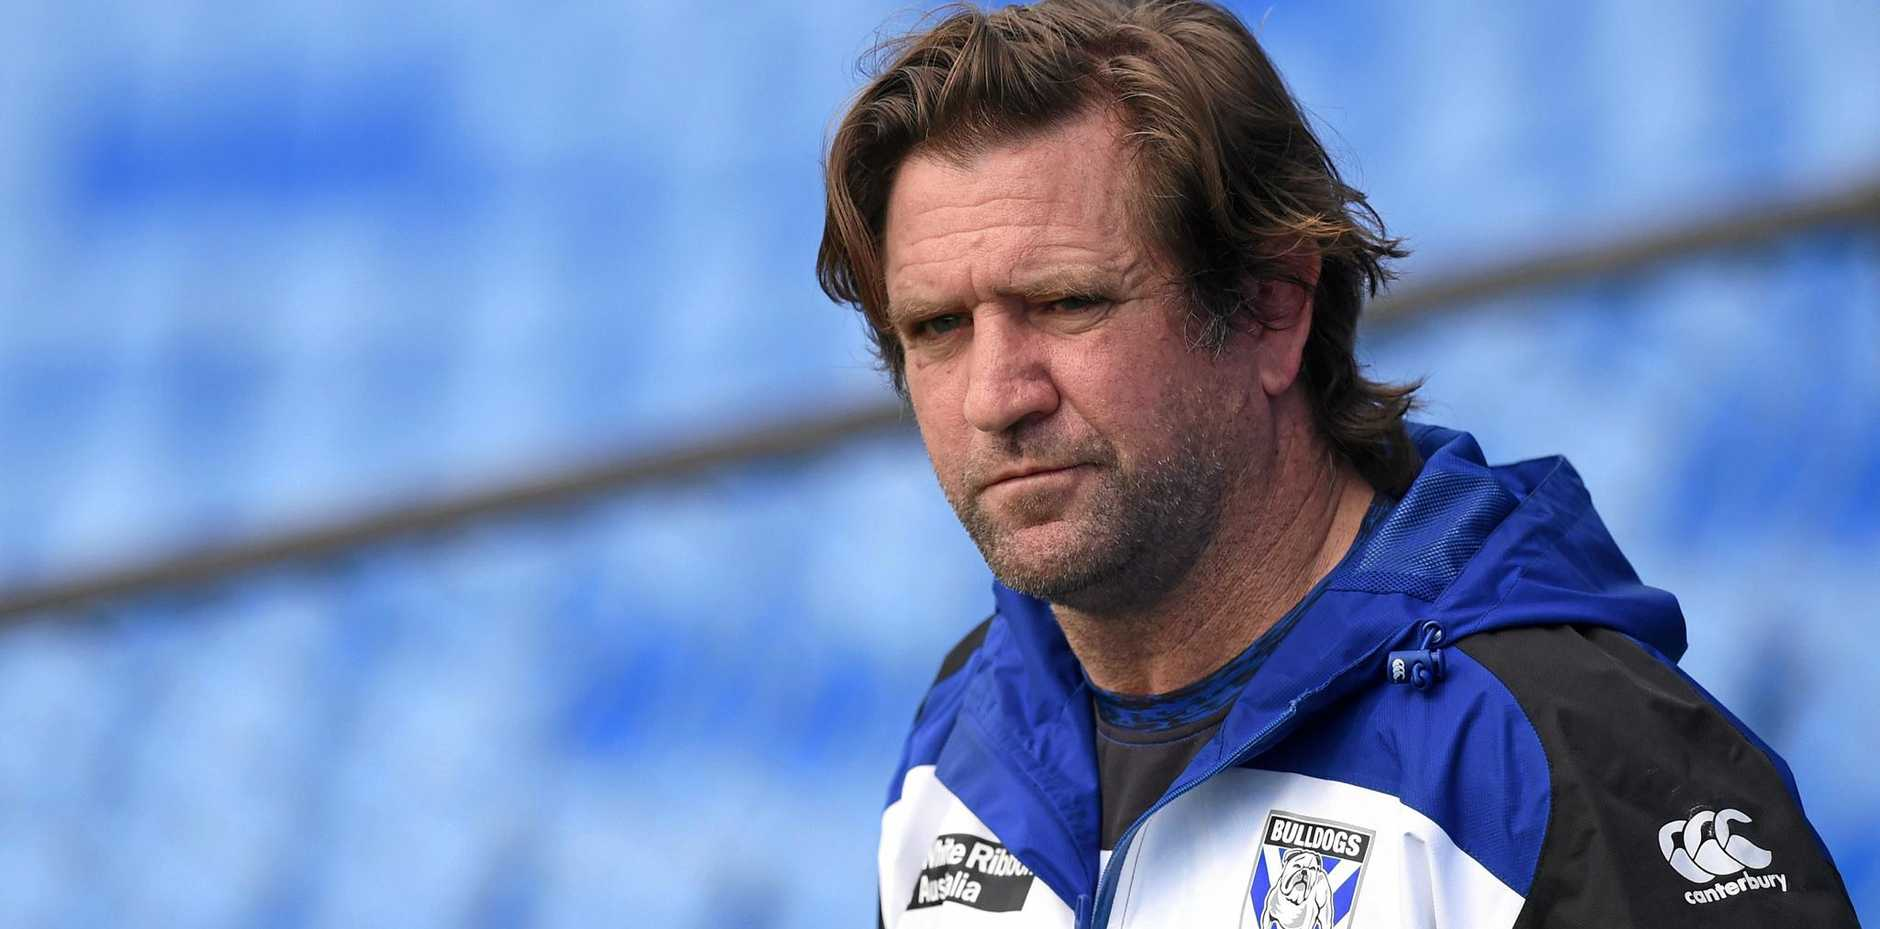 Bulldogs coach Des Hasler looks on during a training session in Sydney.